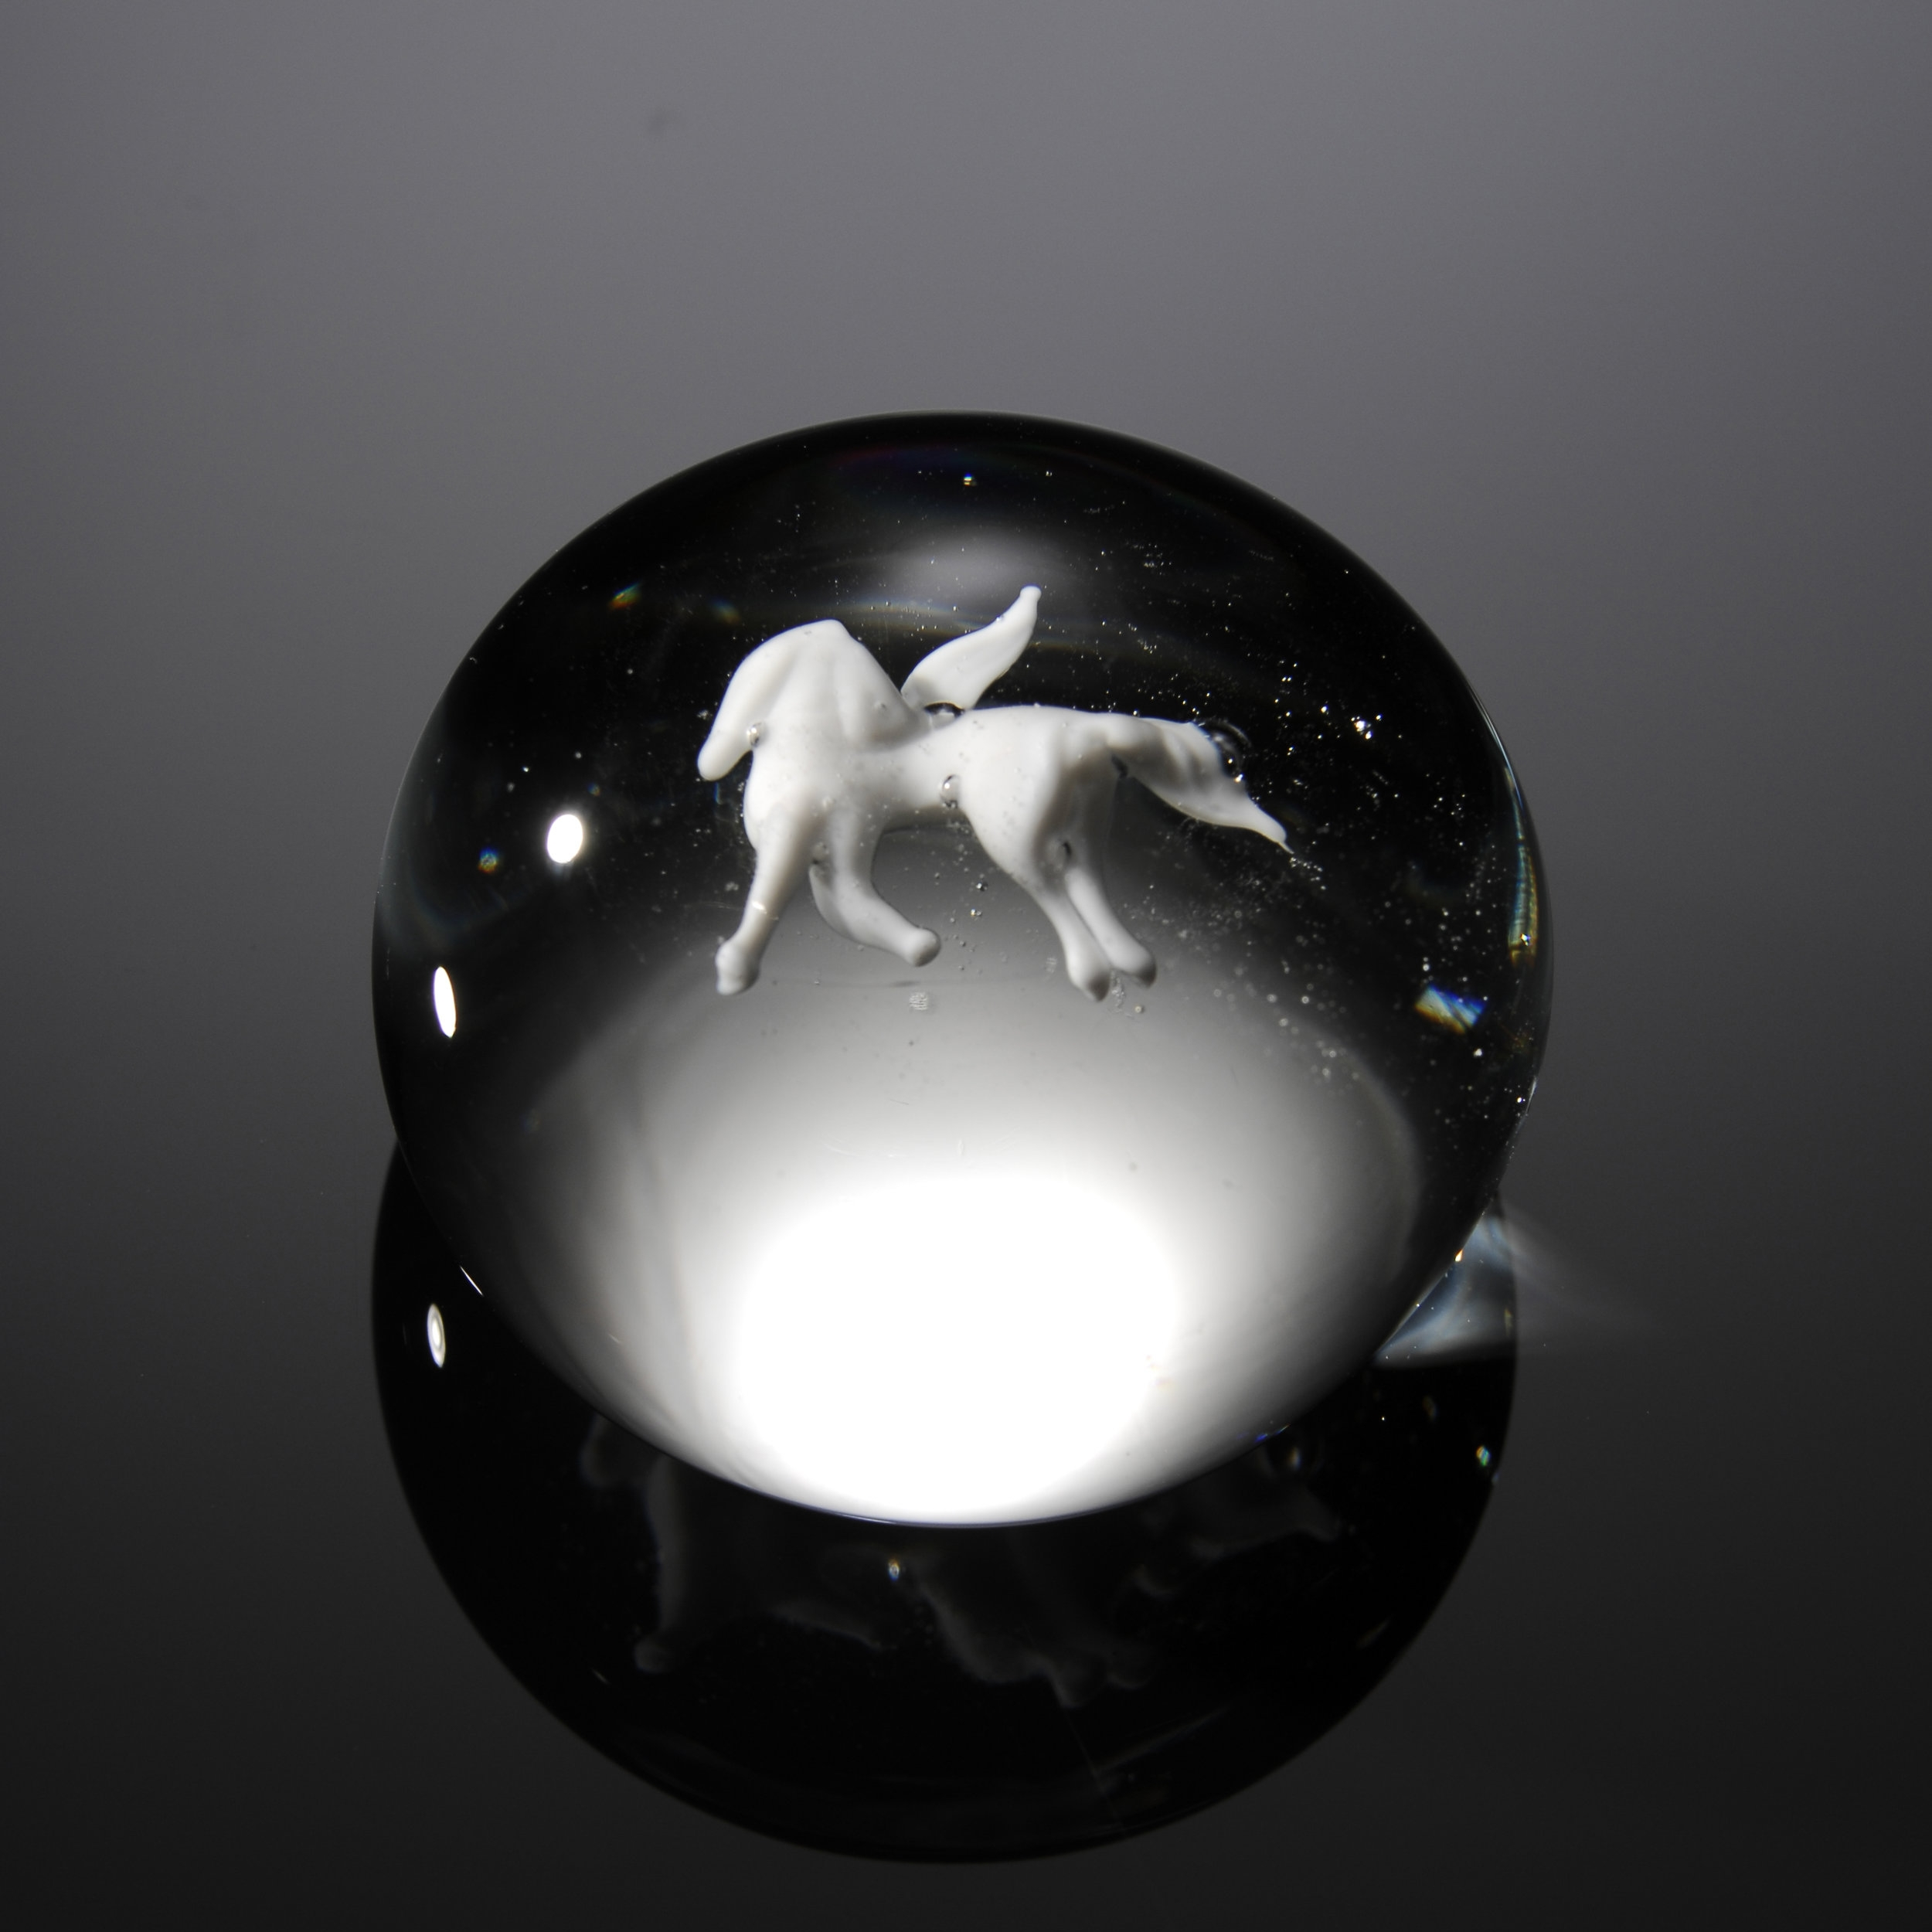 1969; Pegasus Paperweight; D. 1 3/4 inches x H. 1 1/8 inches